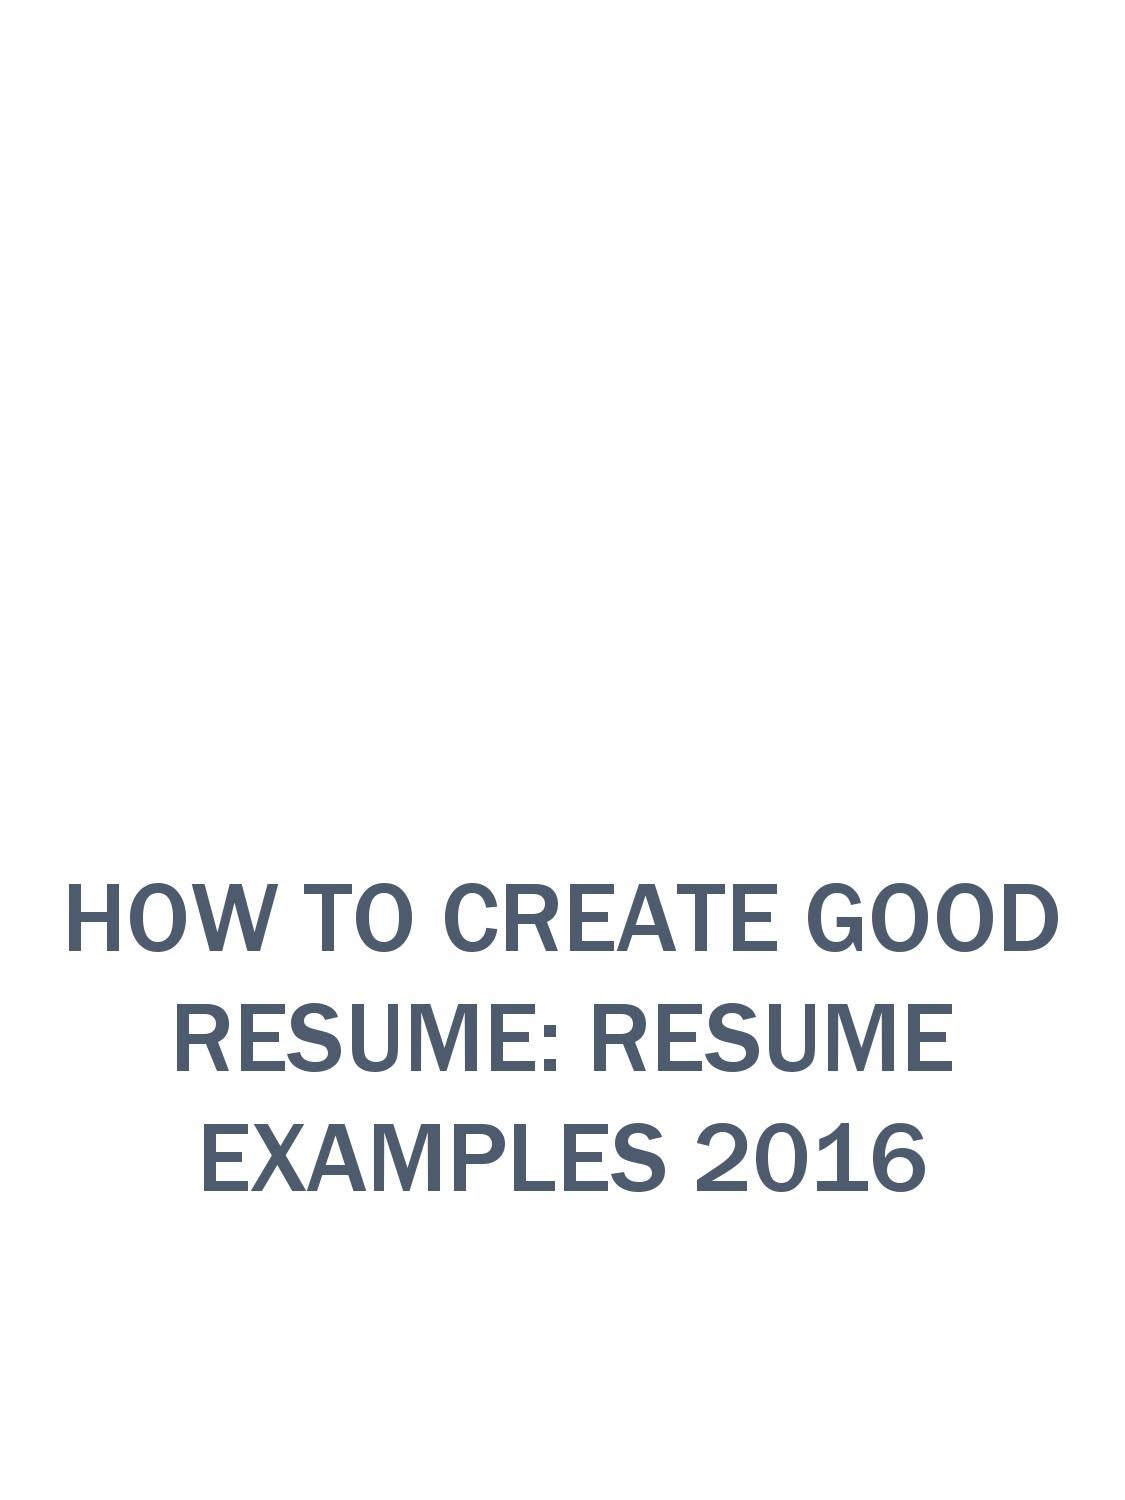 How To Make An Effective Resume How To Create Good Resume By Resumeexamples2016 Issuu